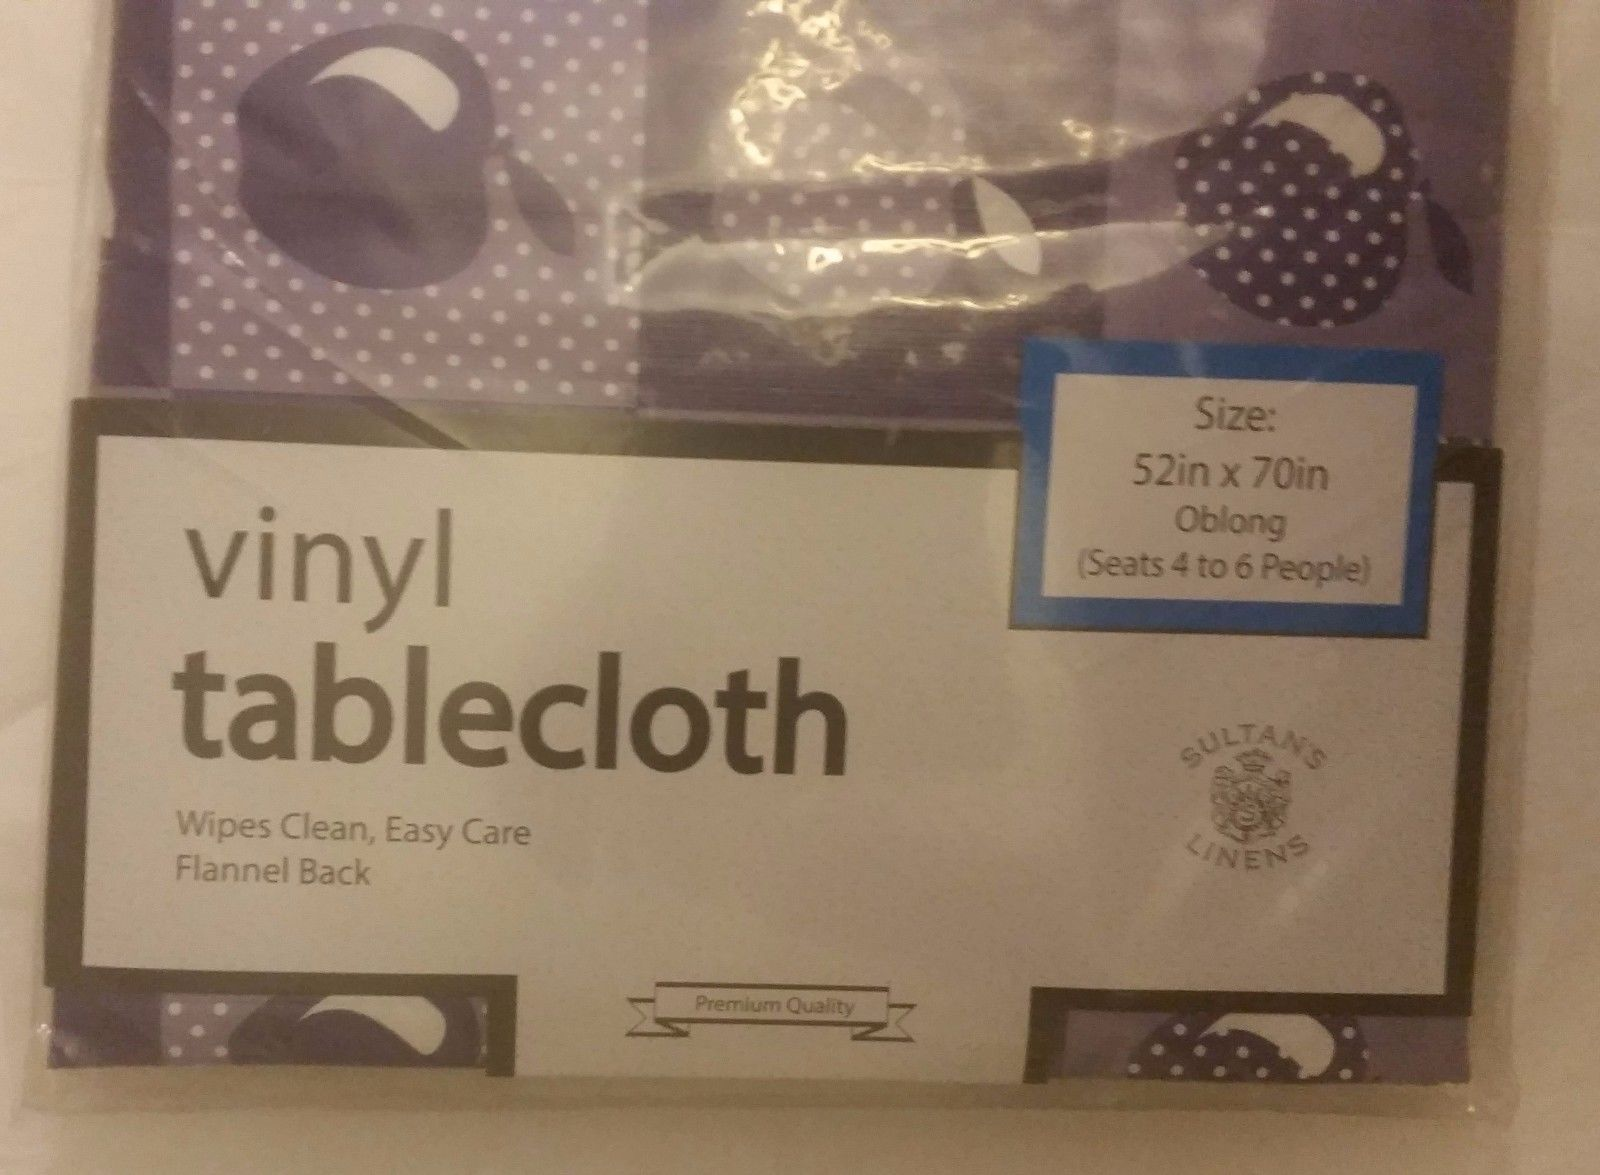 """FLANNEL BACK VINYL TABLECLOTH 52""""x70"""", OBLONG (4-6 ppl), APPLES on PURPLE, BY SL"""